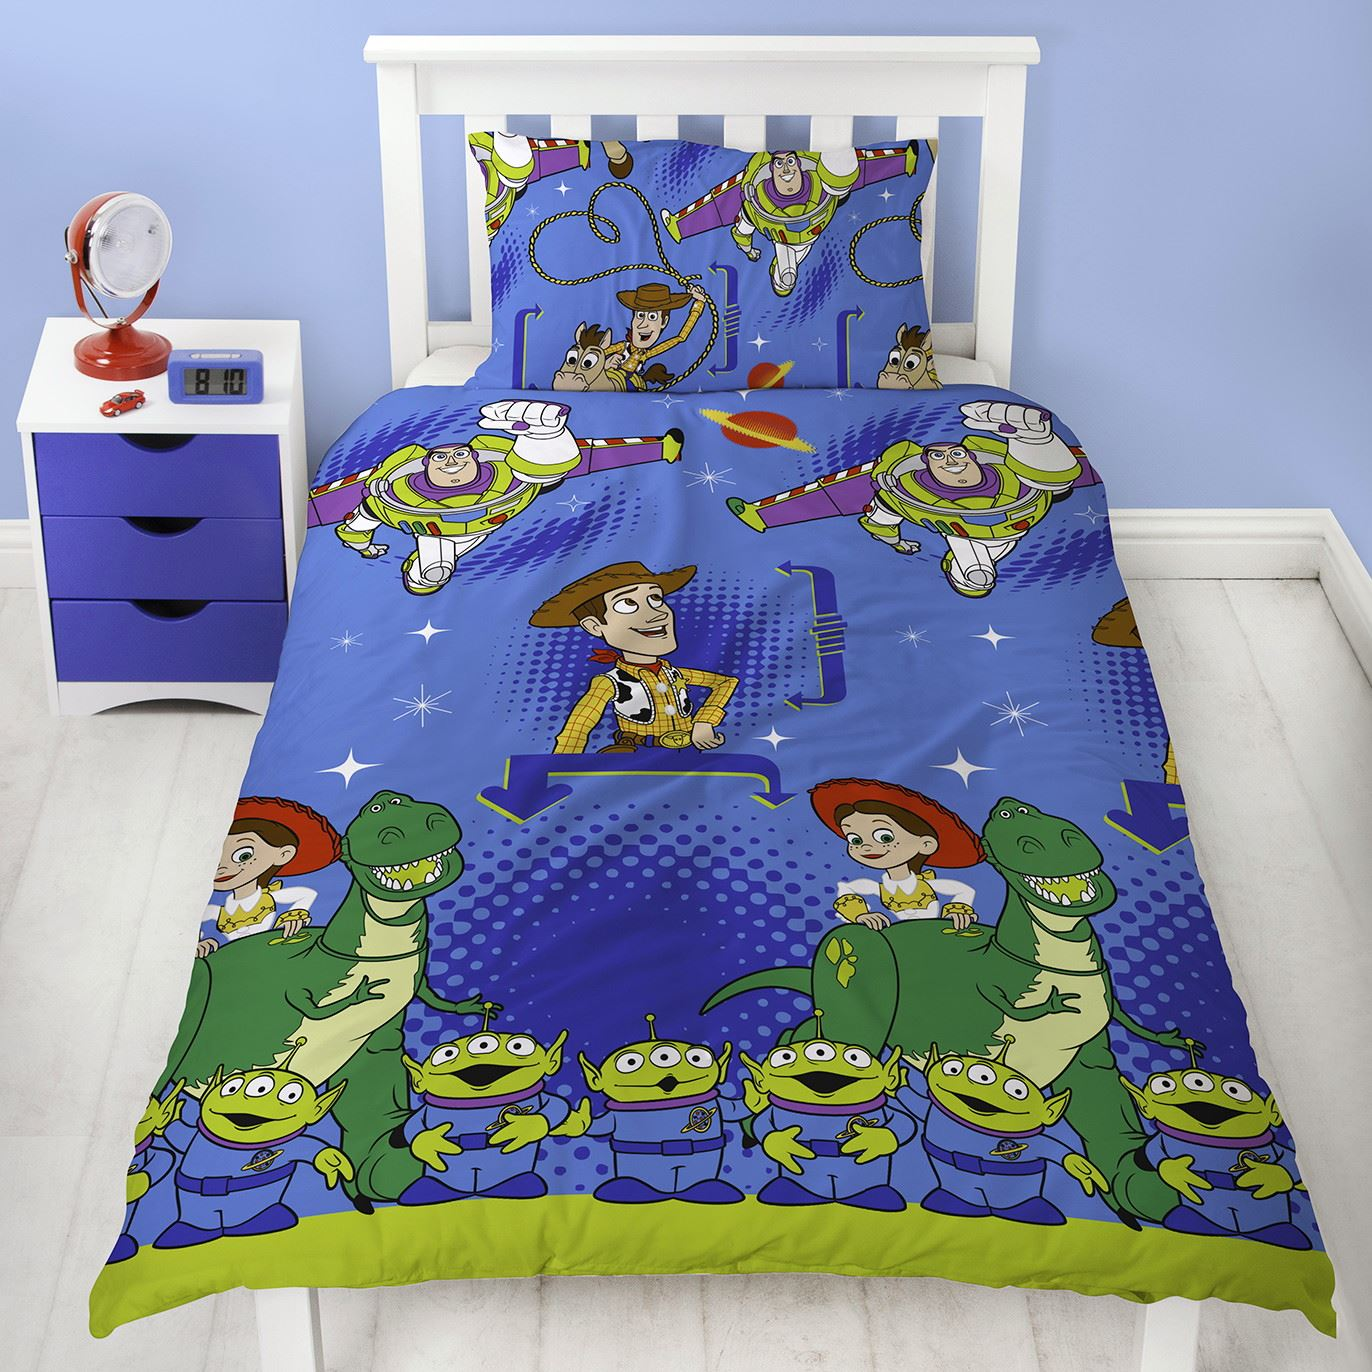 Toy-Story-Friends-Single-Double-Reversible-Duvet-Cover-Bedding-Official-Disney thumbnail 7